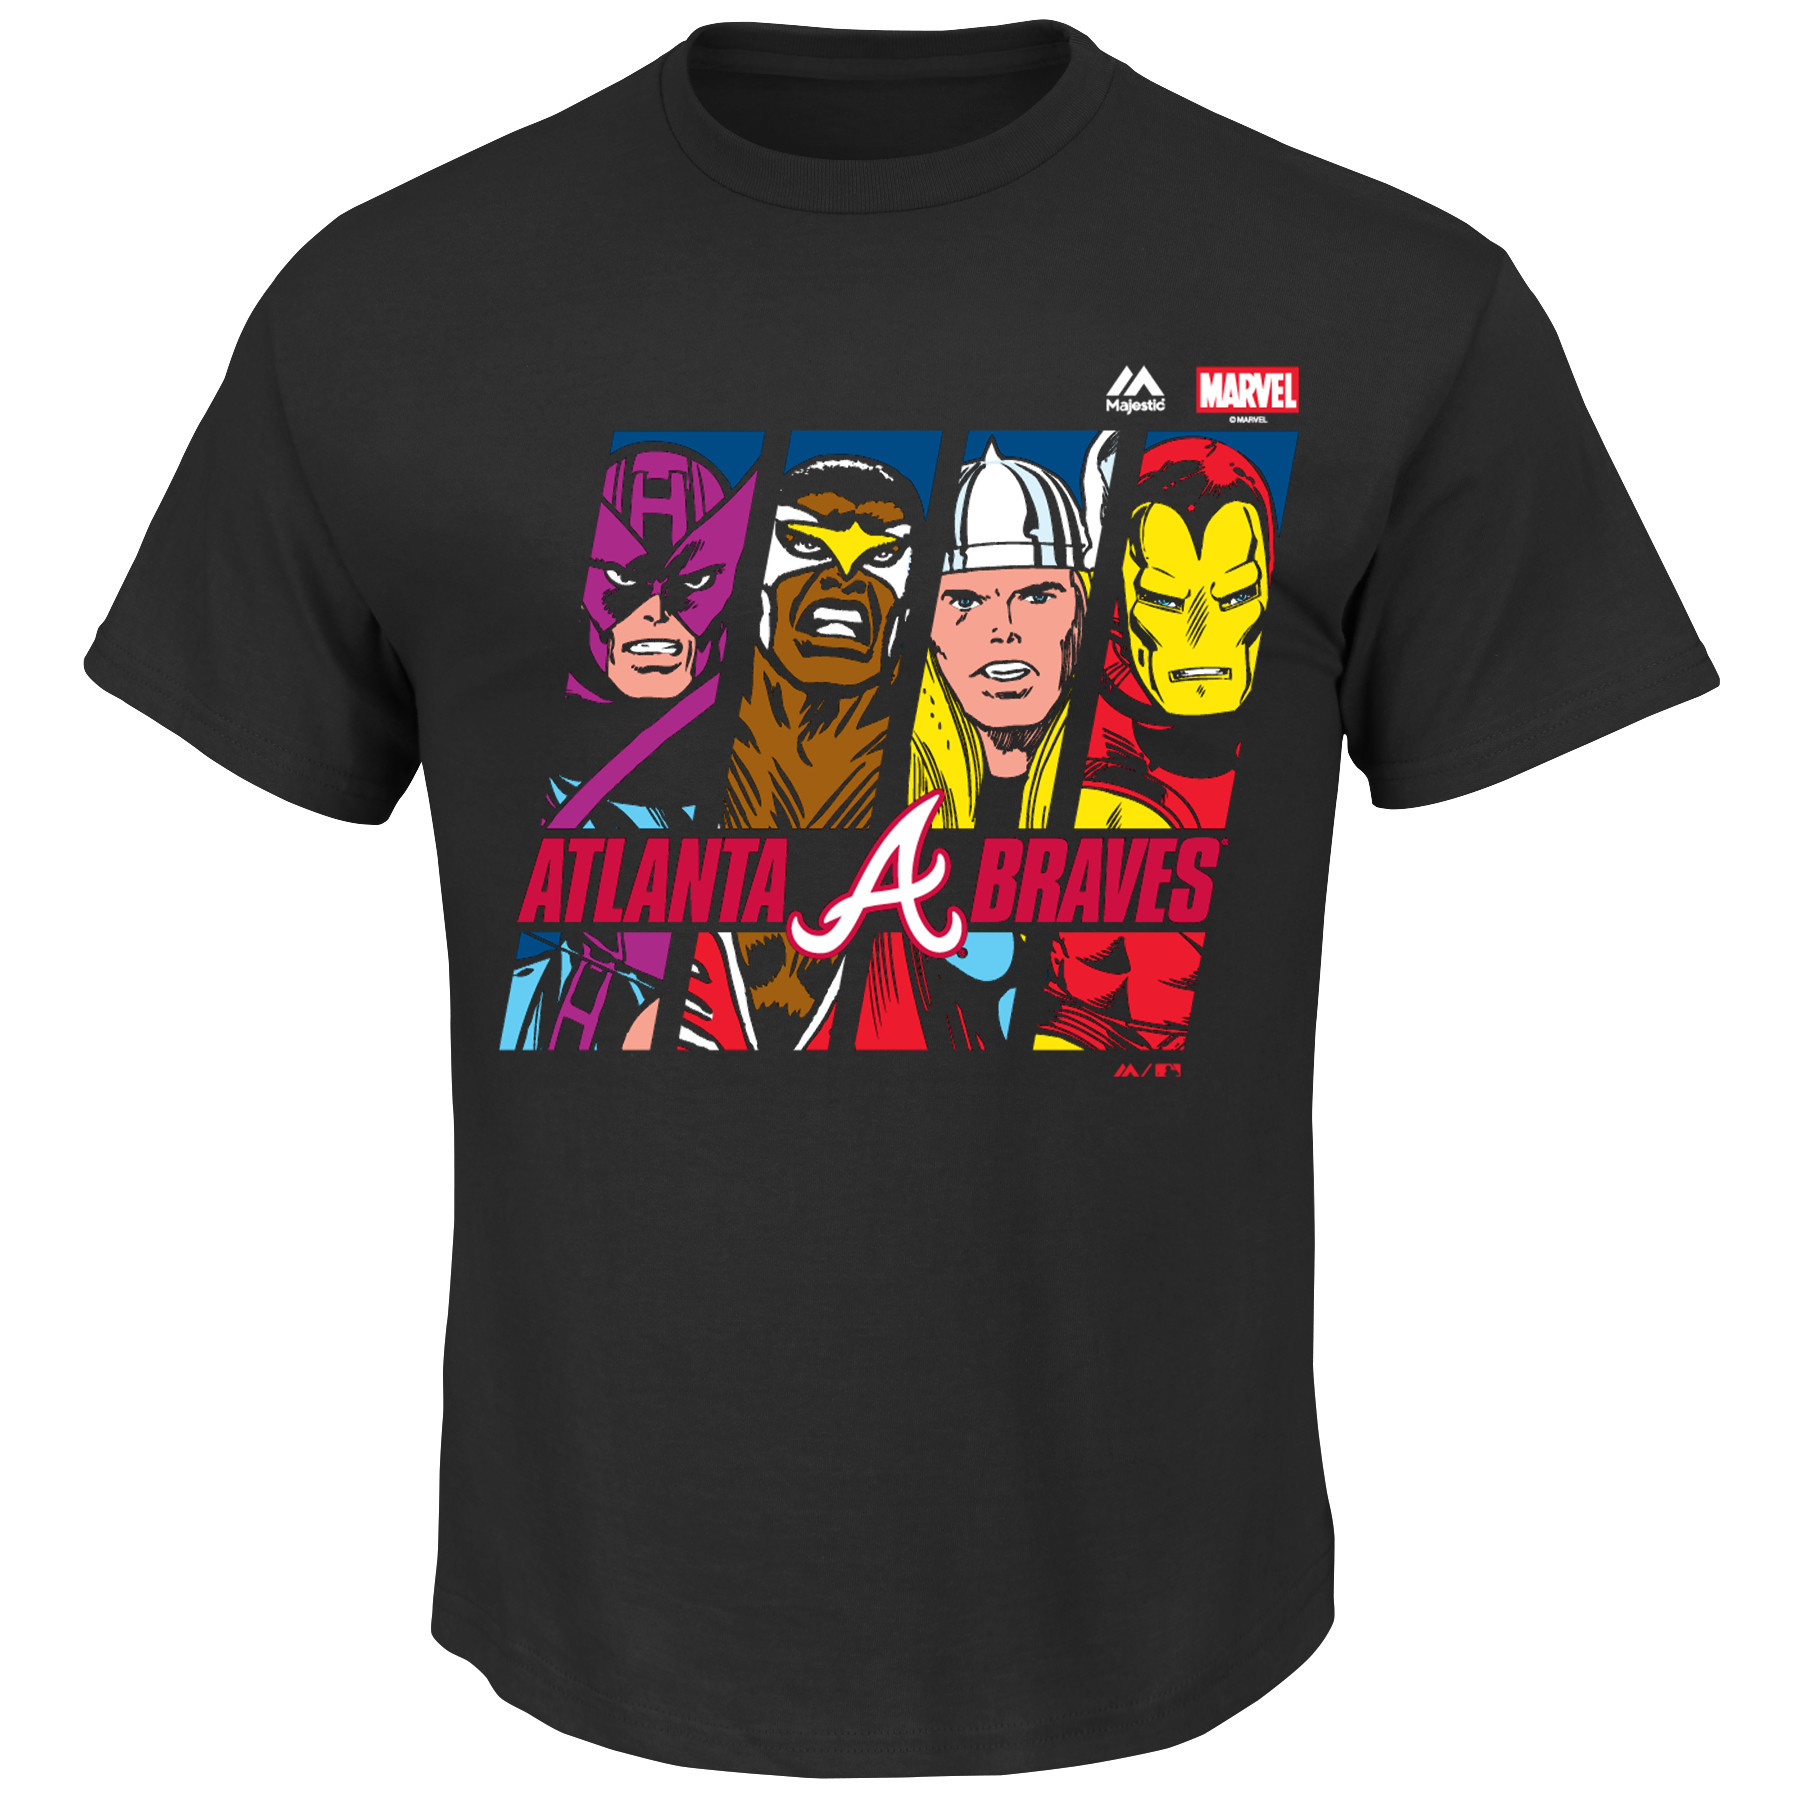 Atlanta Braves Majestic Women's Plus Size Marvel Iron Man Tee - Black